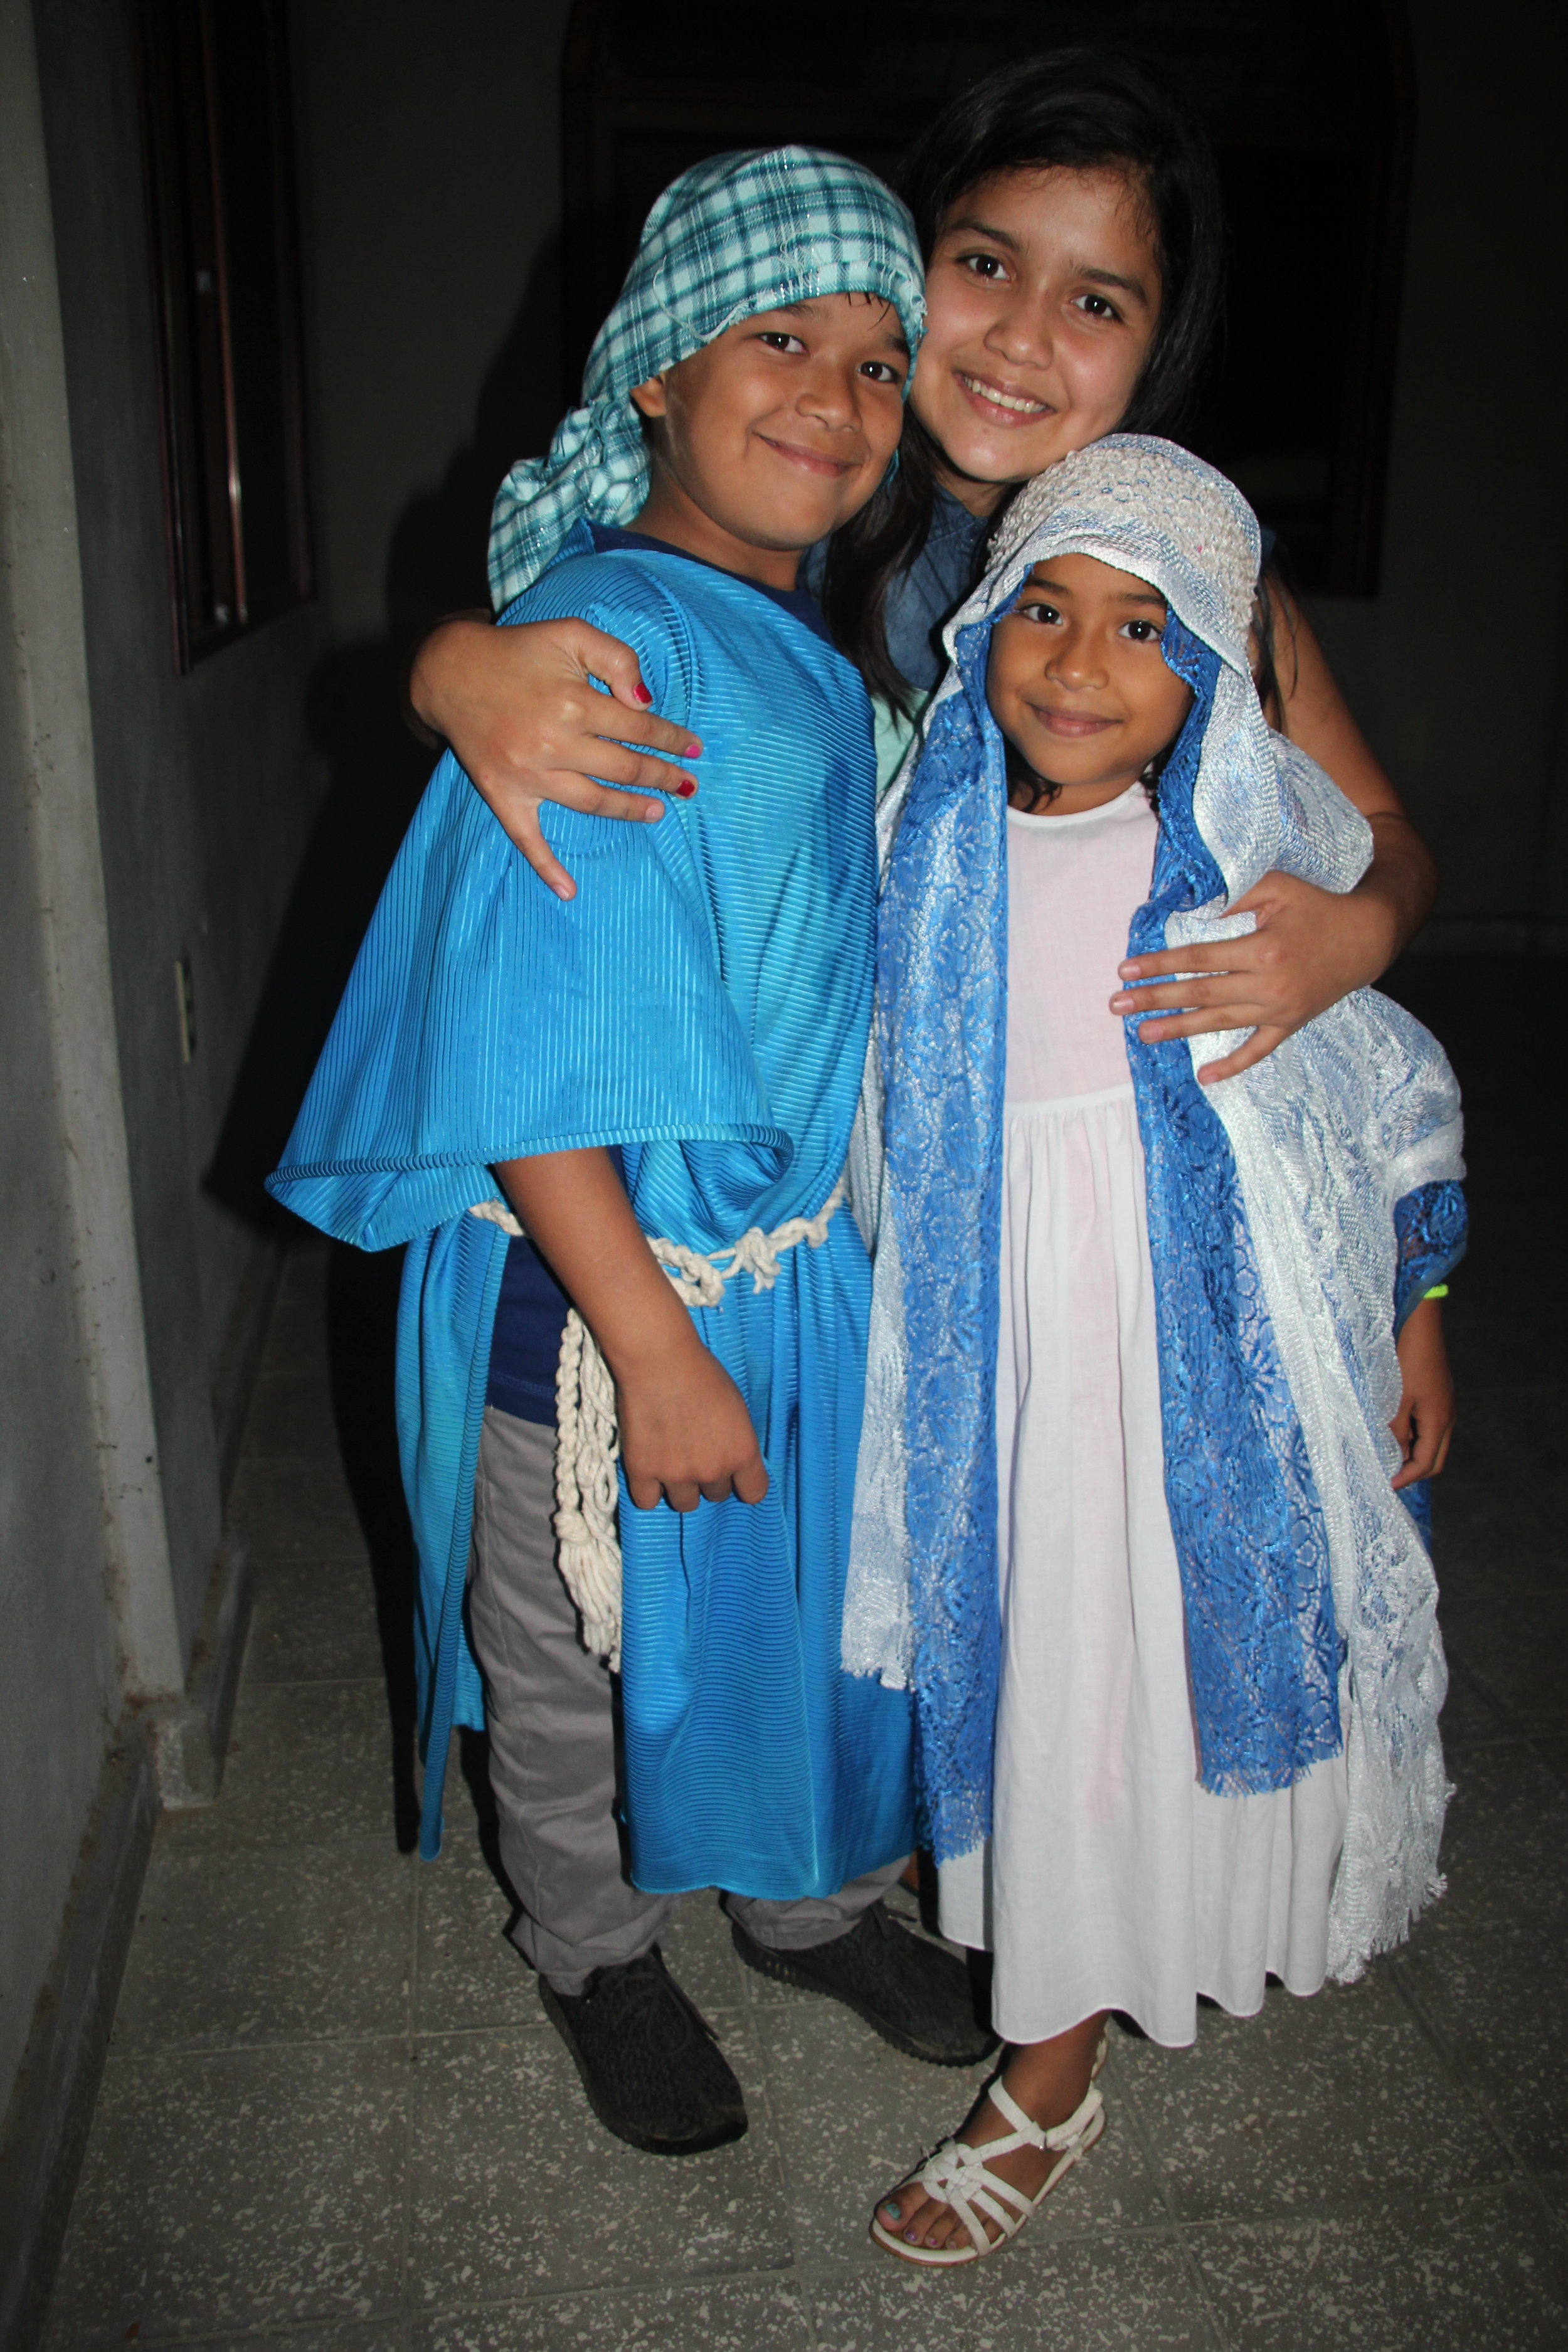 During Three King's Day, or Epiphany, this year, Alanzo and his younger sister played the part of Mary and Joseph. Here they pose with a friend.